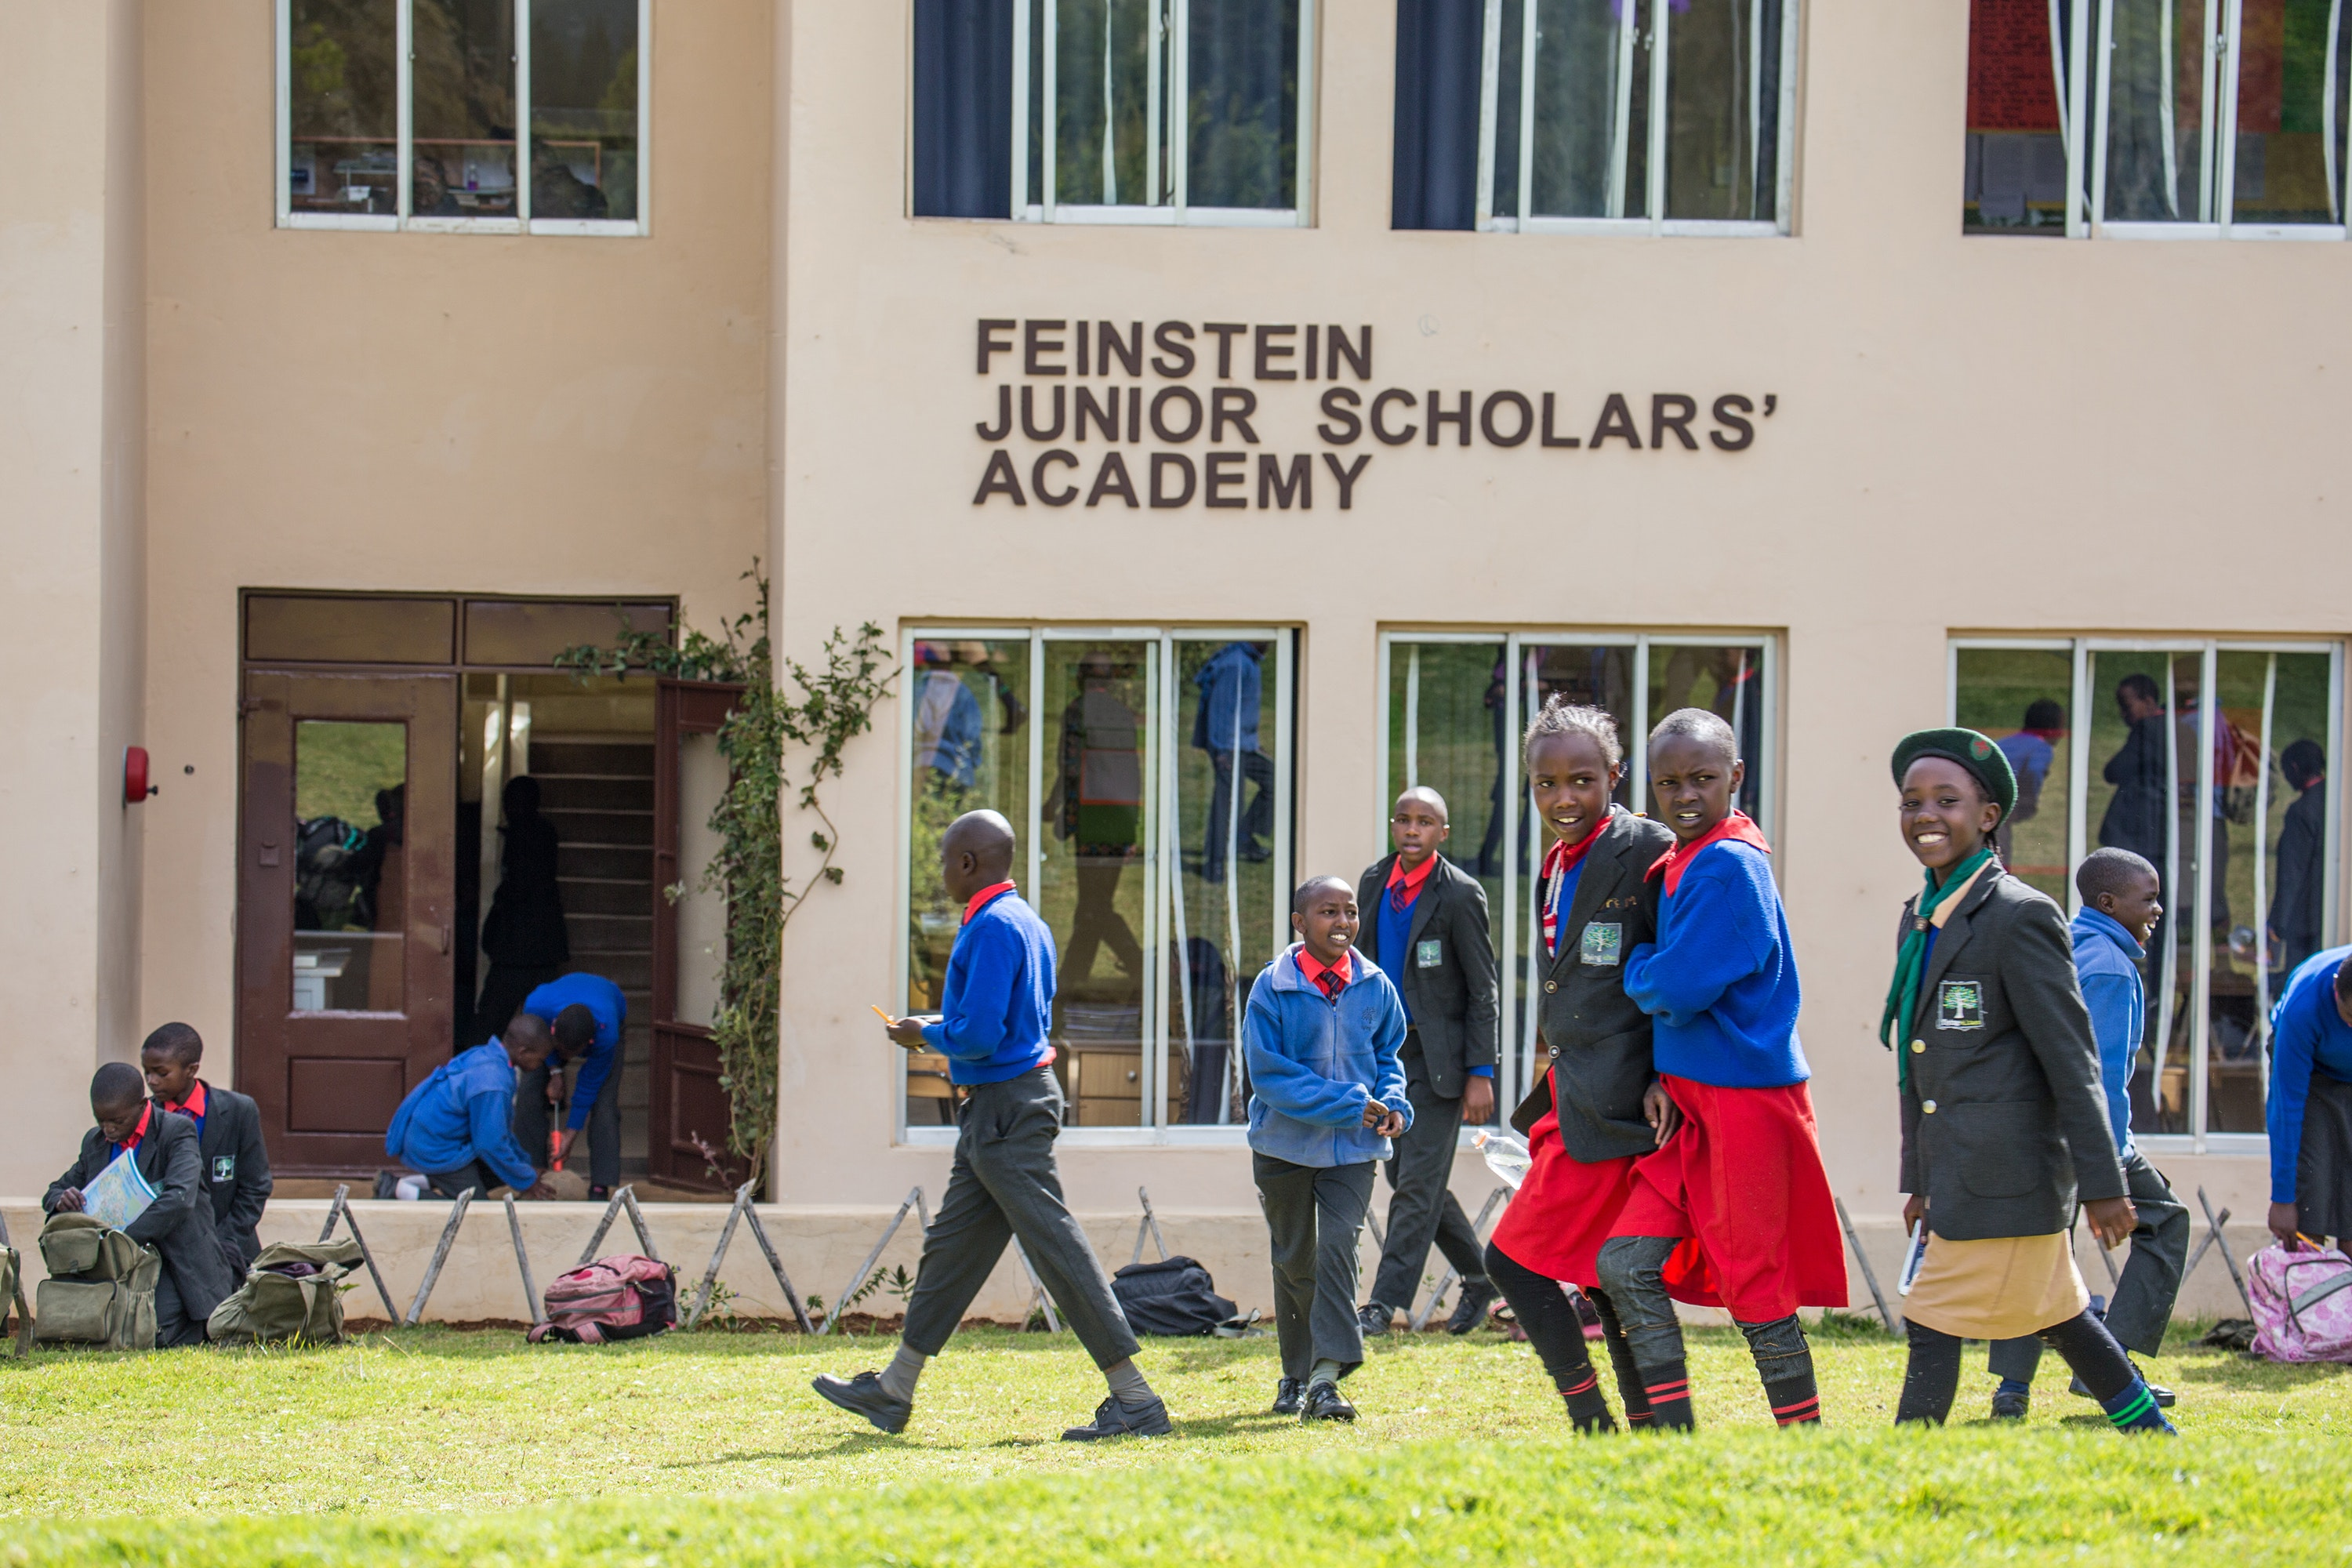 Students at Flying Kites walk in front of the Feinstein Junior Scholars' Academy, the main building on the current campus. Beginning January 2019, a new building will accomodate 70 new students, nearly doubling current enrollment.